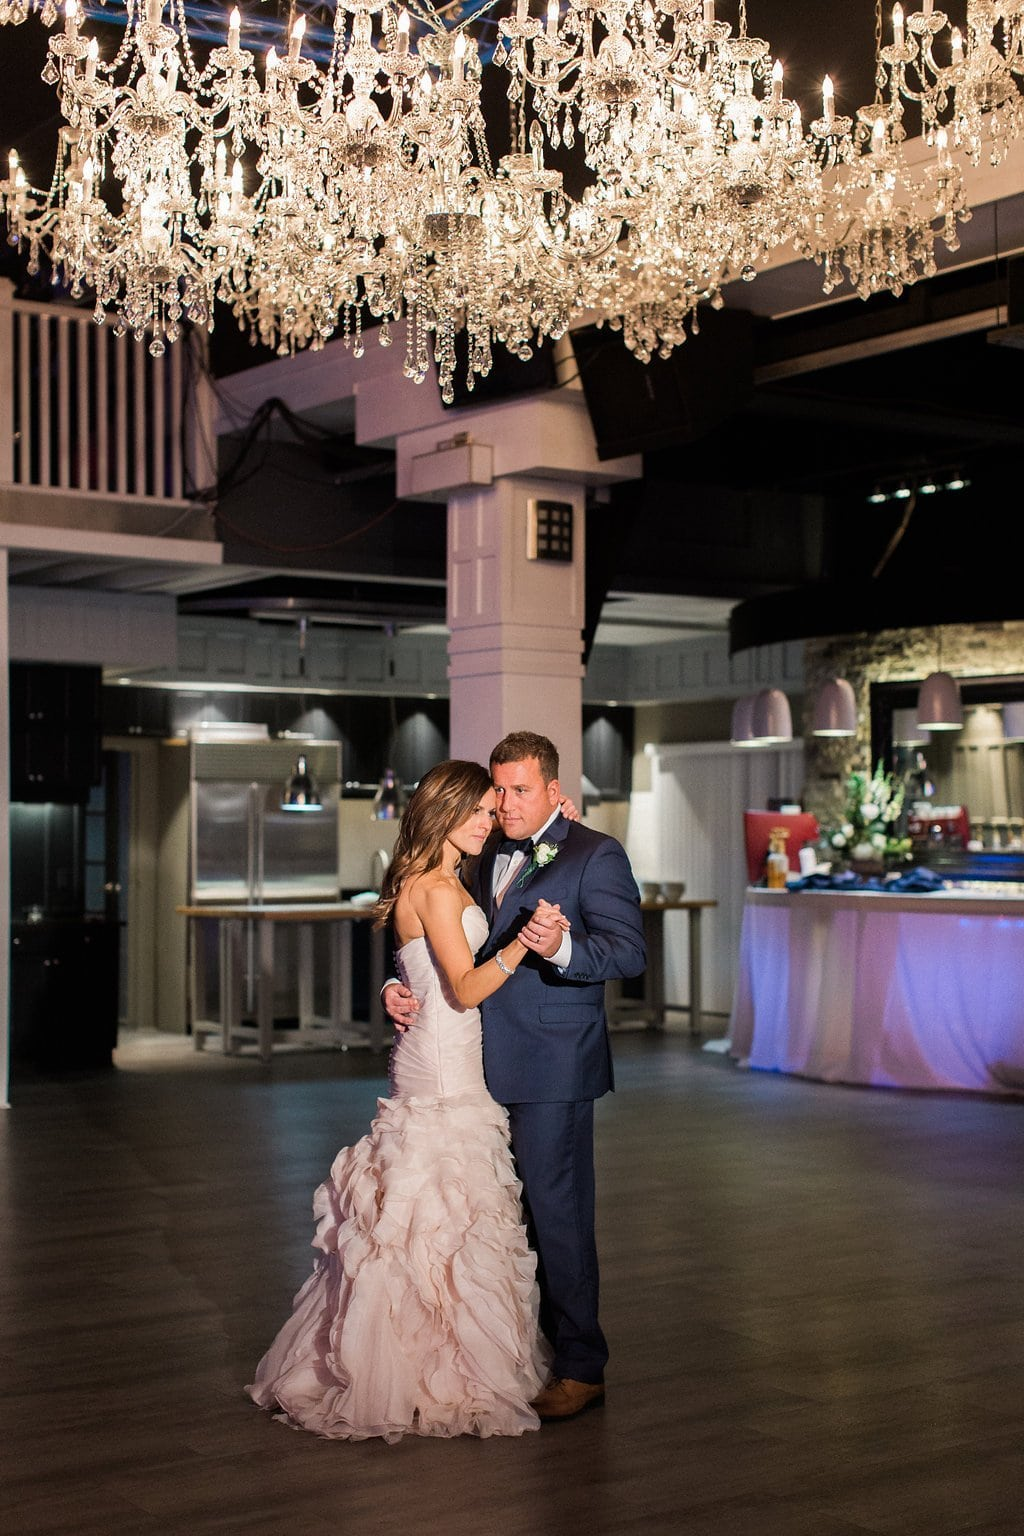 Bride and Groom sharing their first dance under the chandeliers